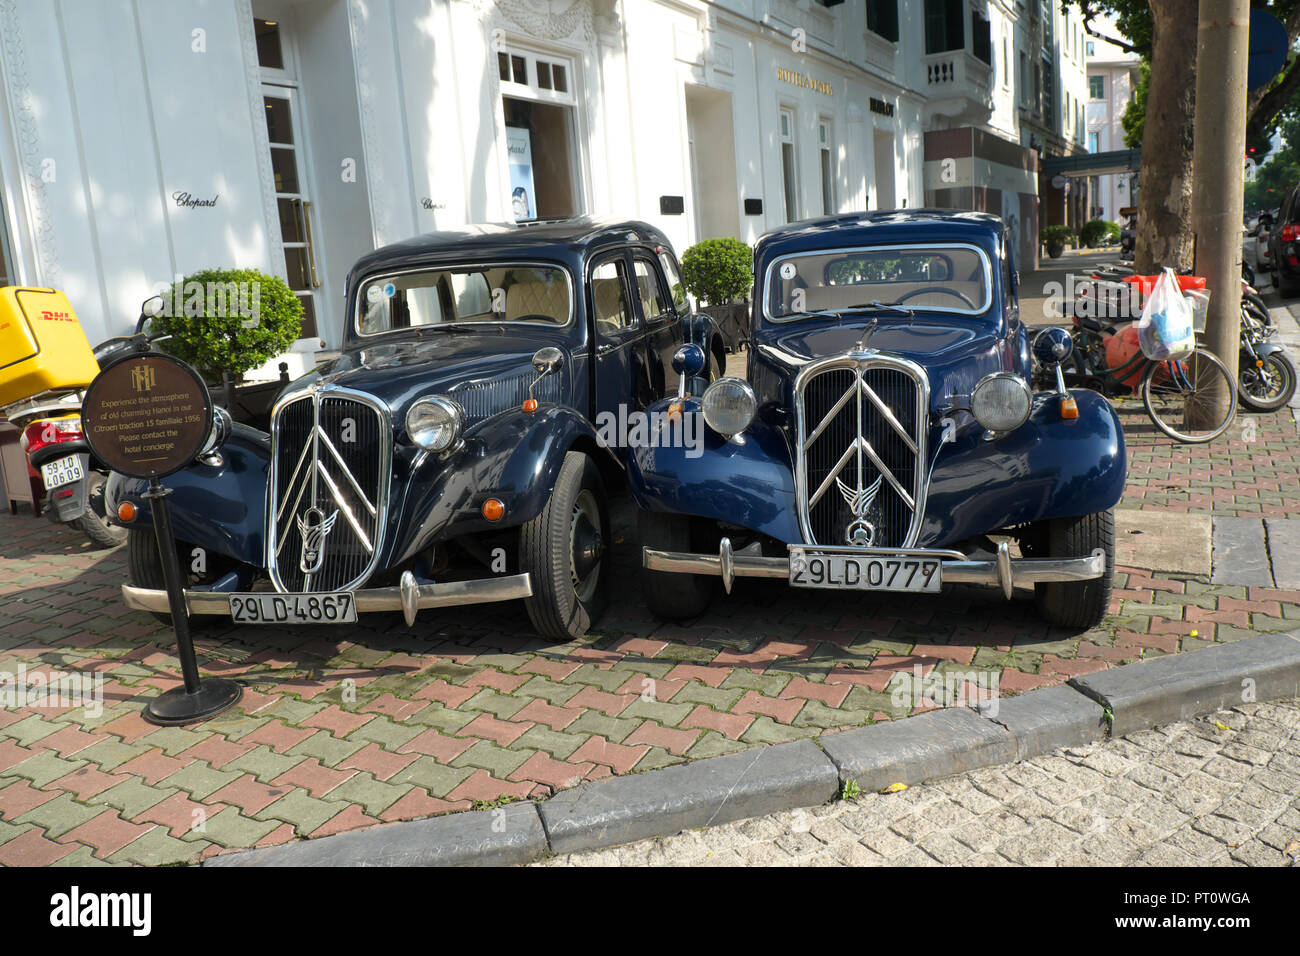 Hanoi Vietnam - Old style Citroen saloon cars outside the Hotel Metropole in the Old Quarter of Hanoi - Stock Image